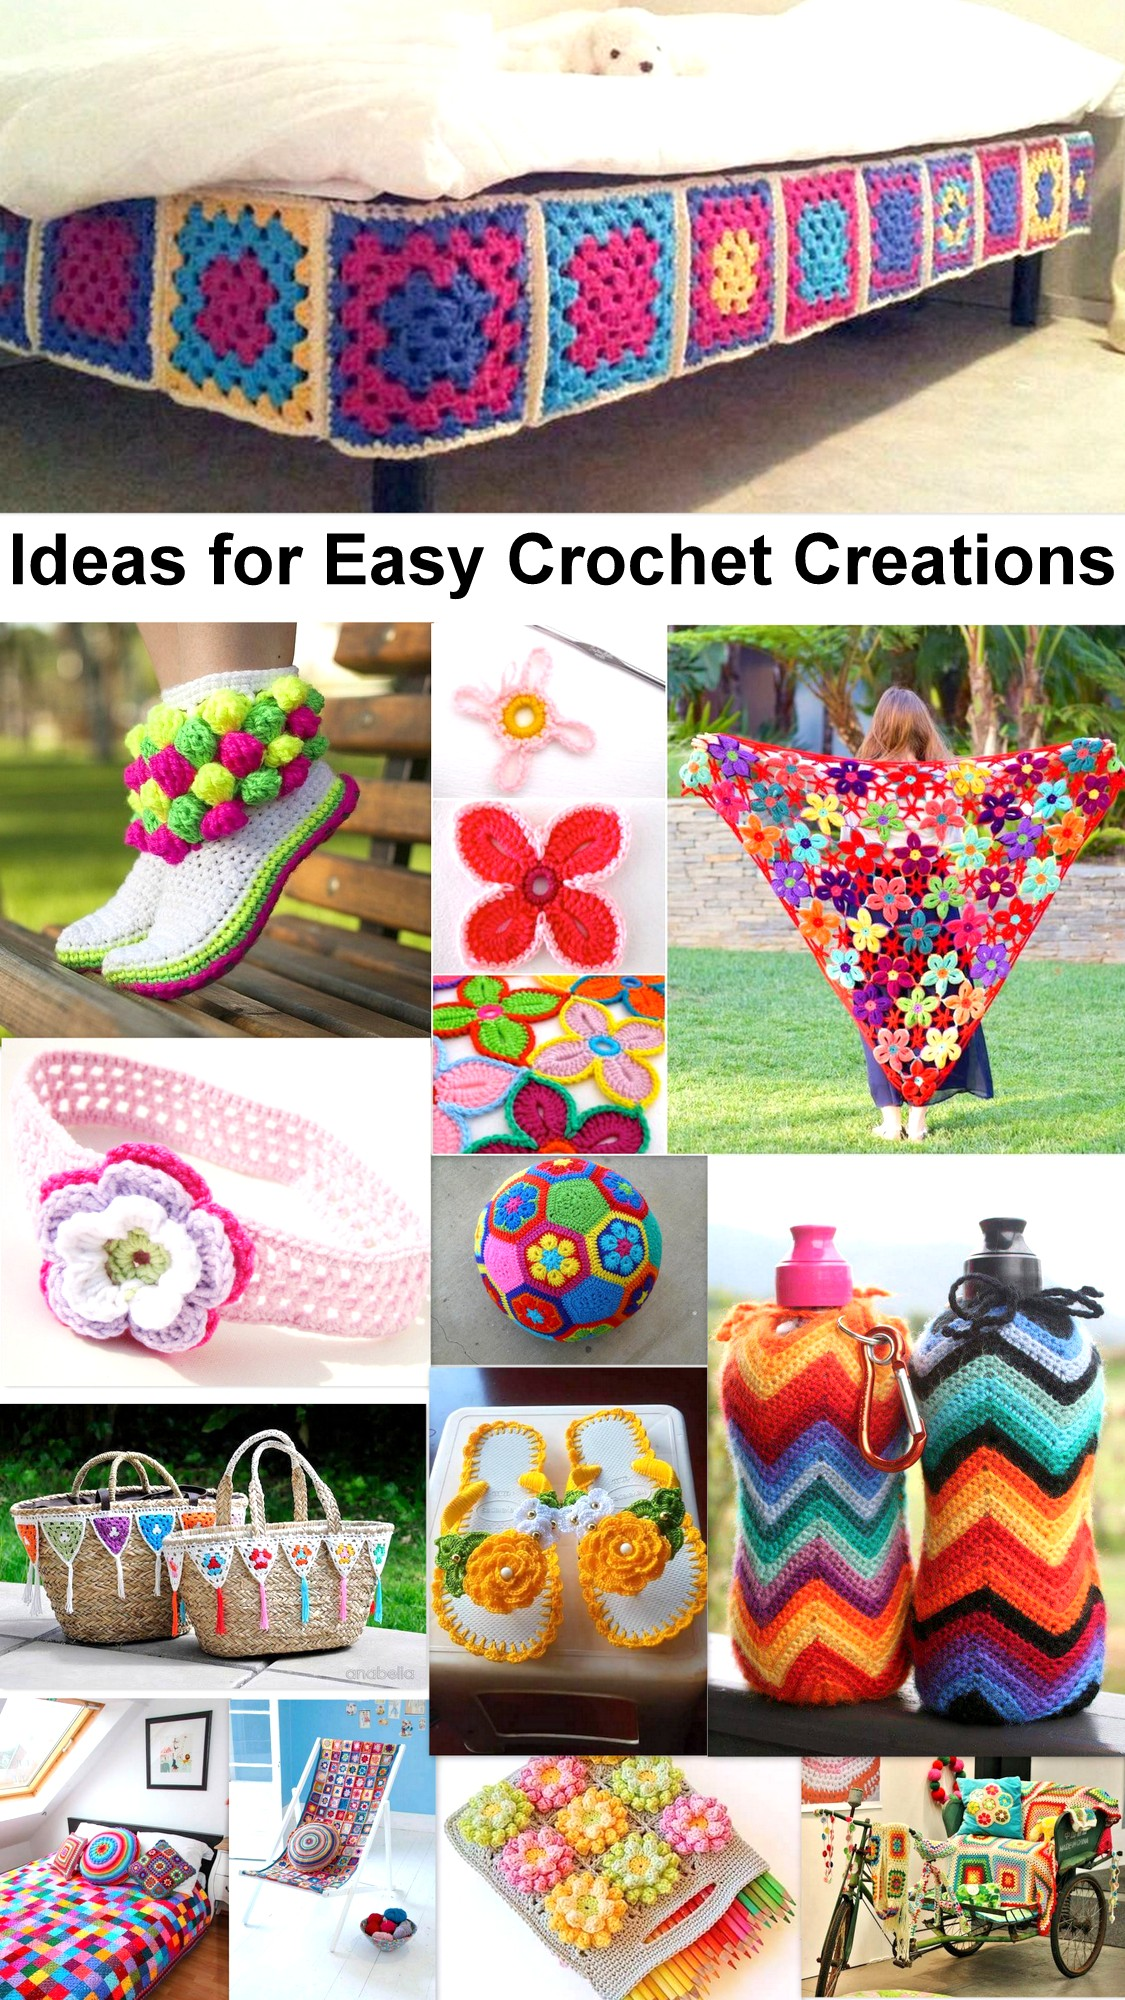 Ideas for Easy Crochet Creations